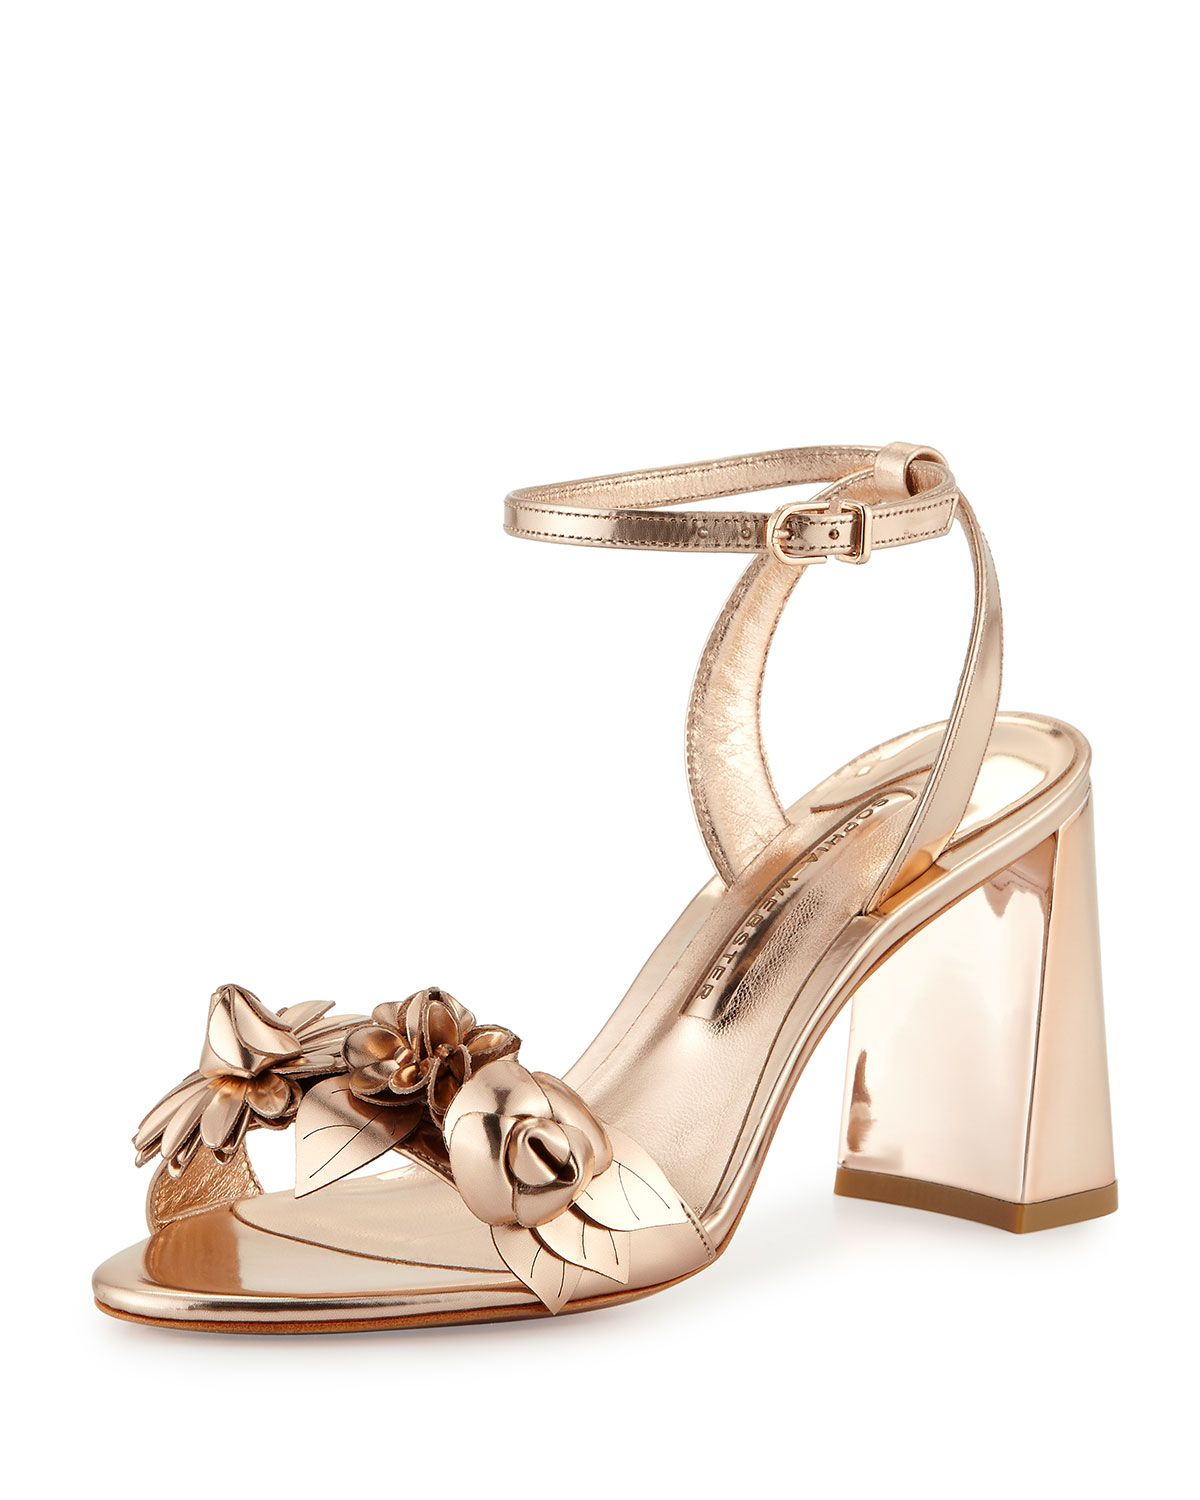 f5158f1ebfe Sophia Webster Lilico Floral Leather 85mm Sandal in Rose Gold